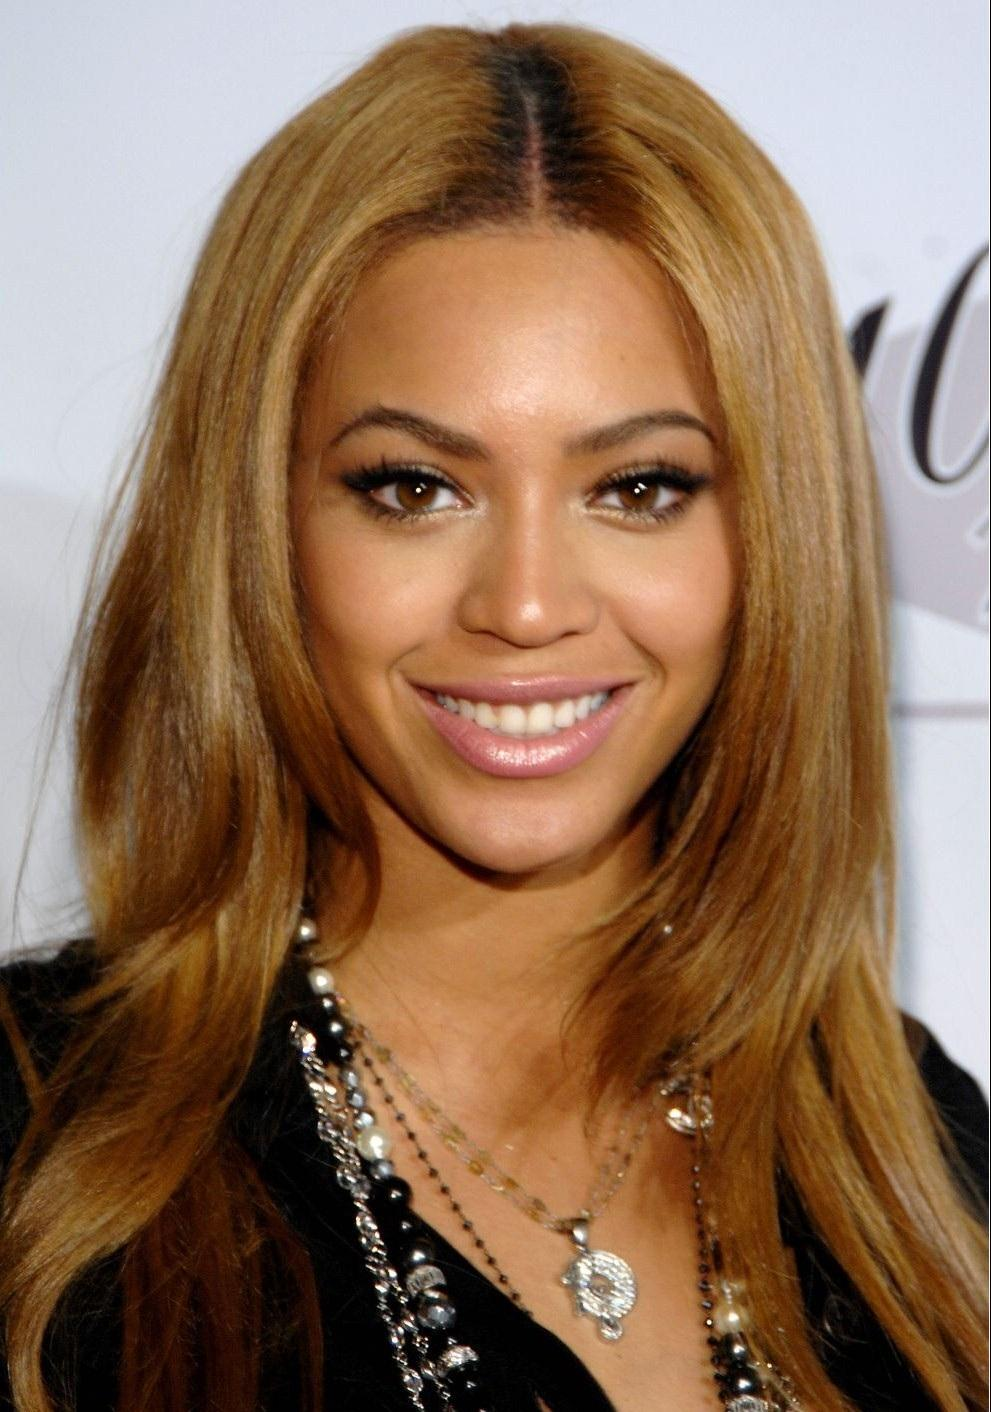 Picture of Beyonc     Knowles in General Pictures   beyonc knowles     General photo of Beyonc     Knowles